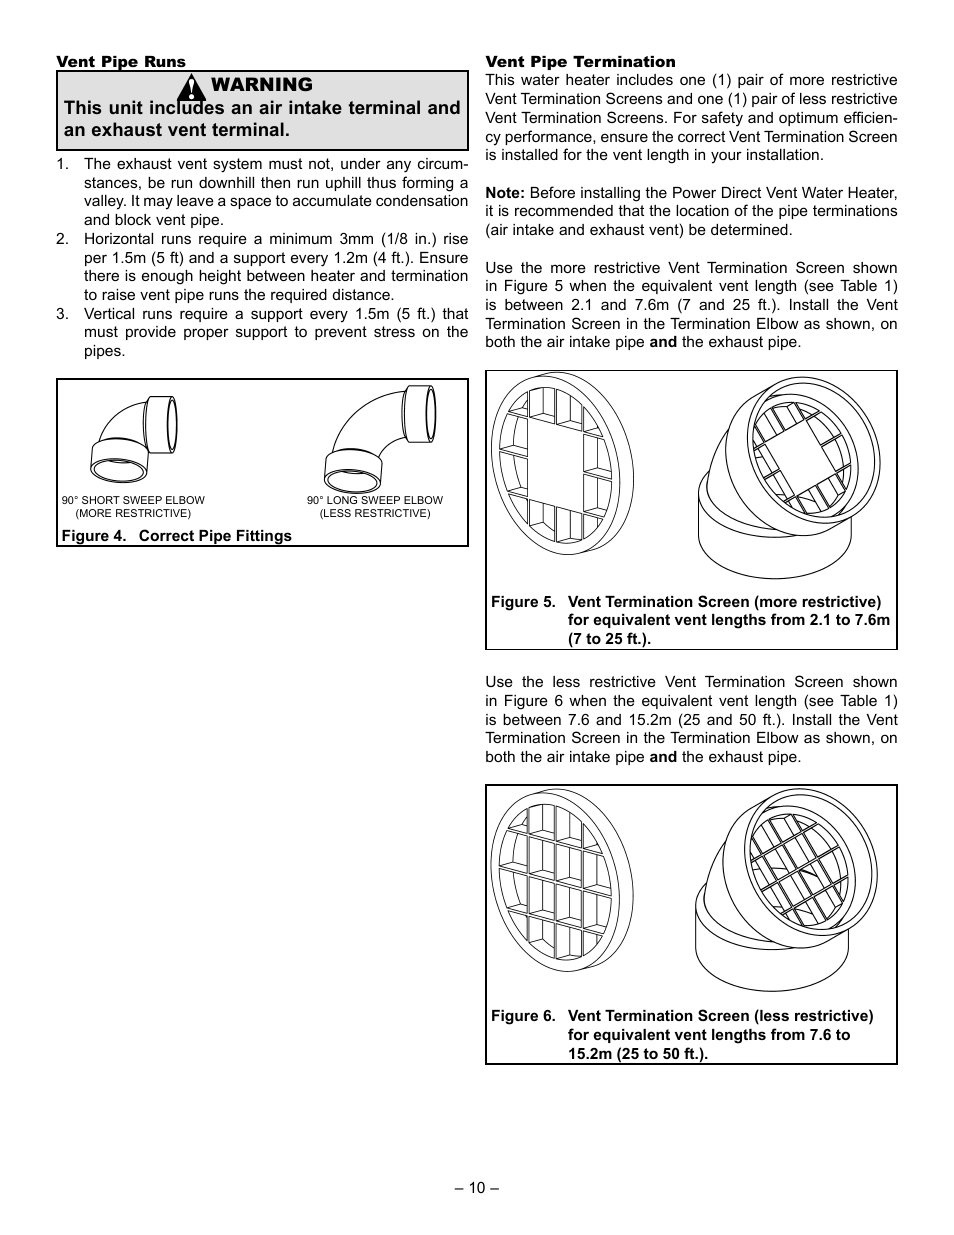 John Wood Power Direct Vent (ENERGY STAR) User Manual | Page